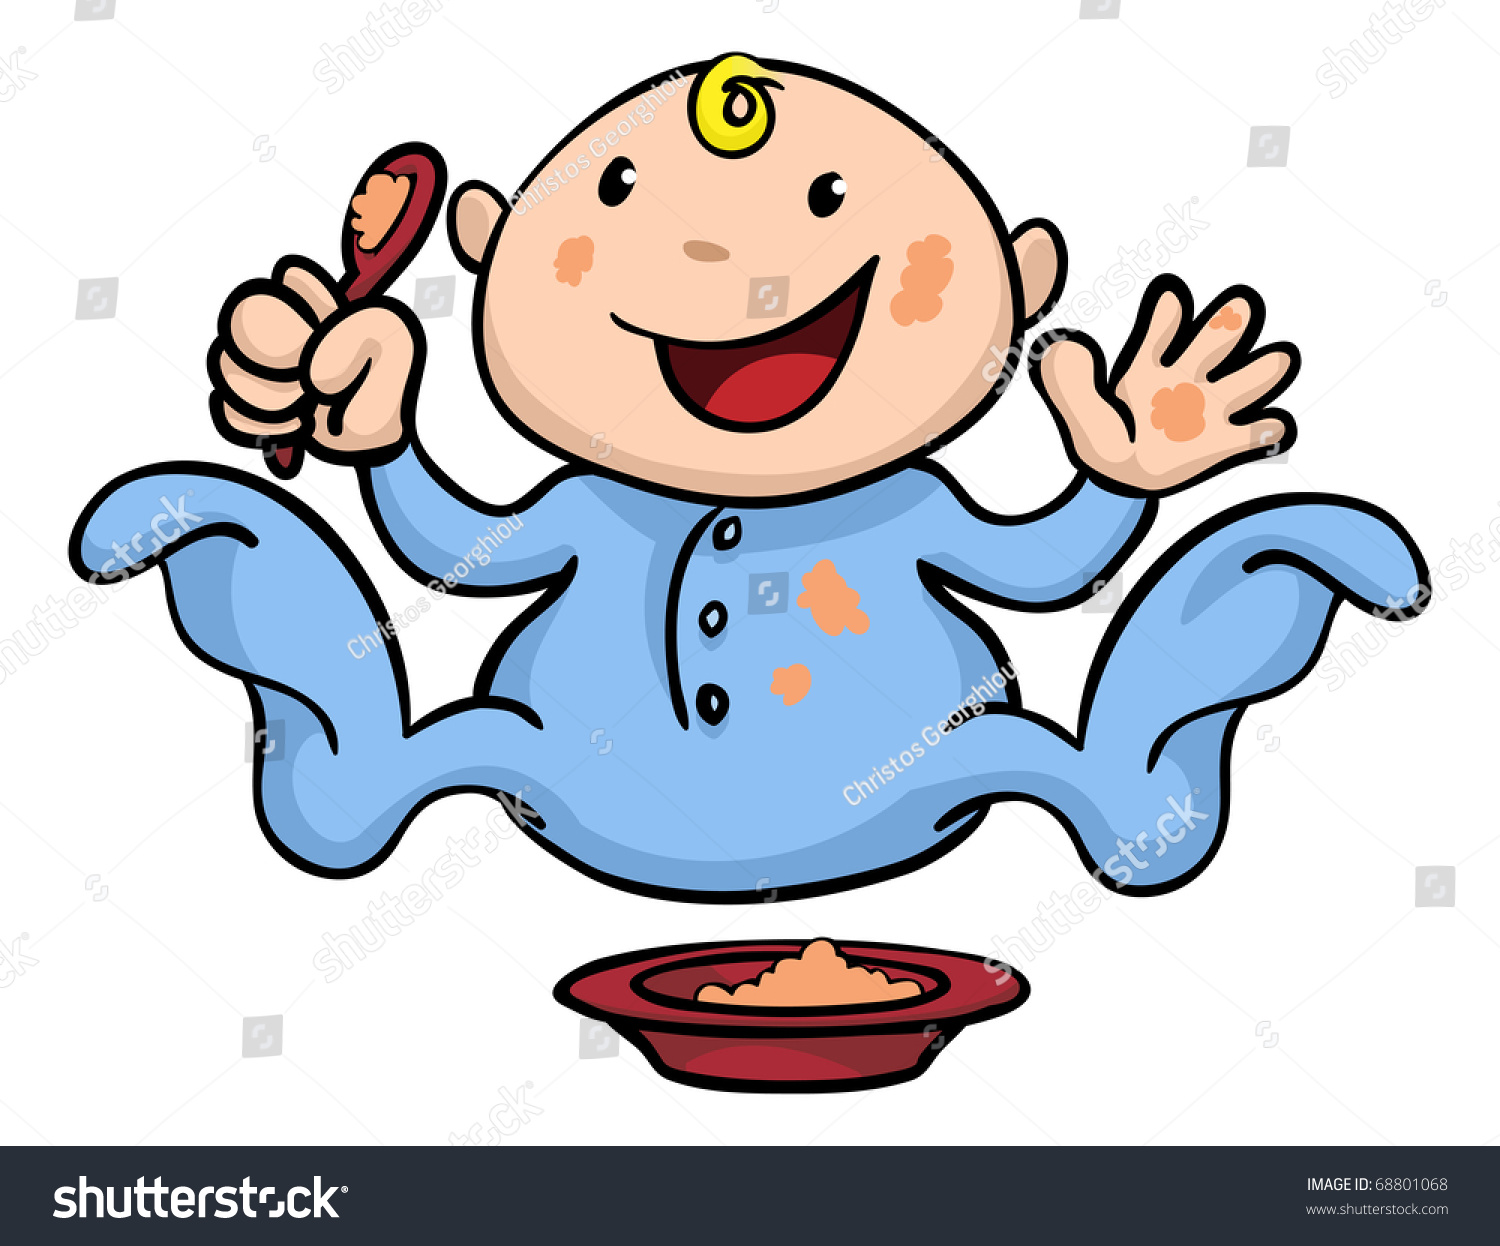 baby eating clipart - photo #7